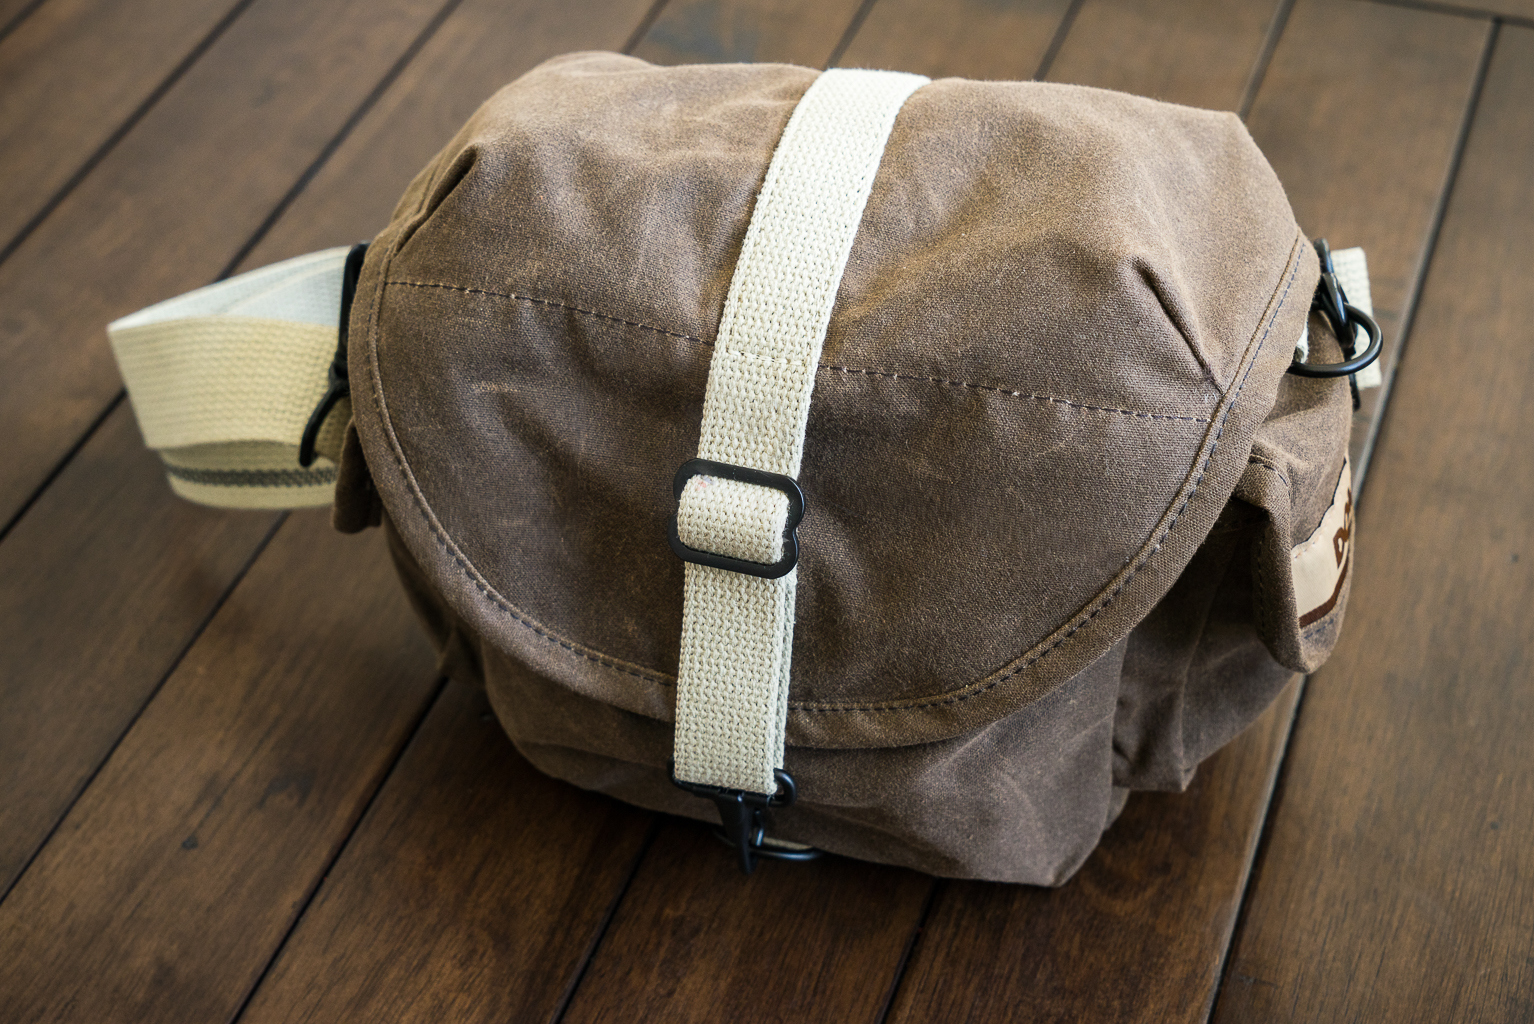 Domke F-8 Camera Bag Review